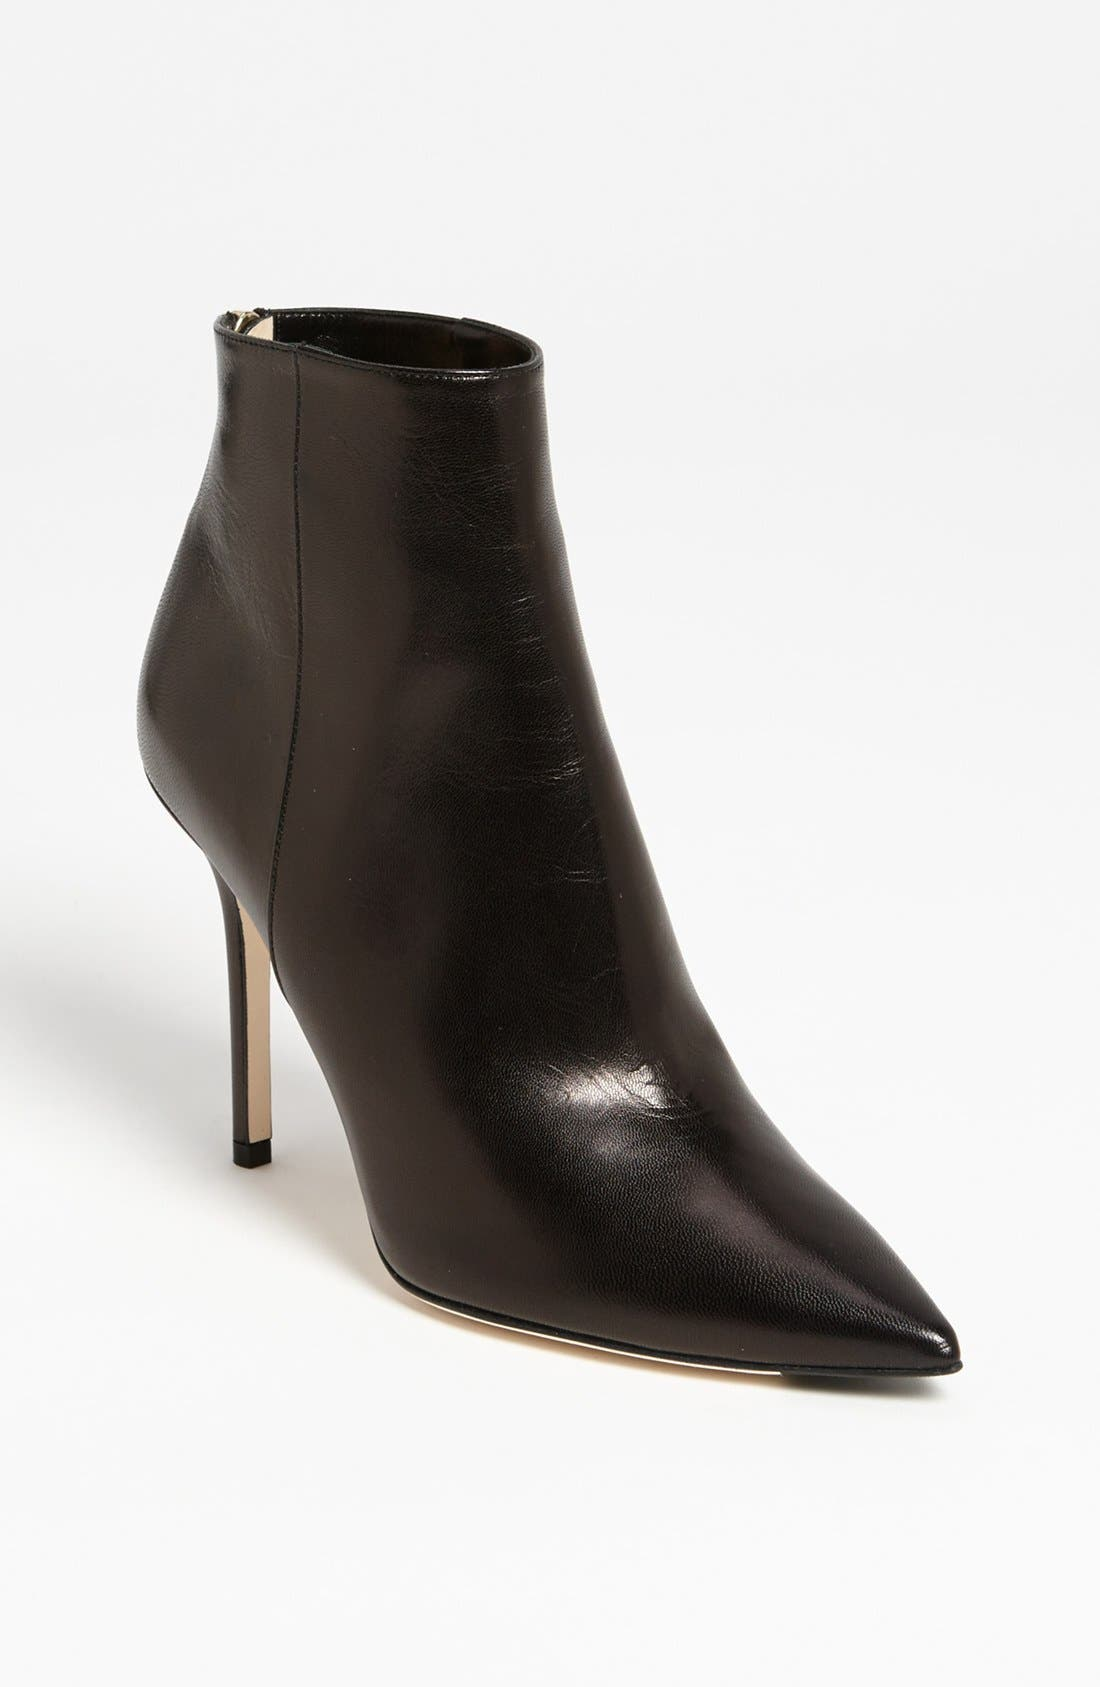 Alternate Image 1 Selected - Jimmy Choo 'Arena' Bootie